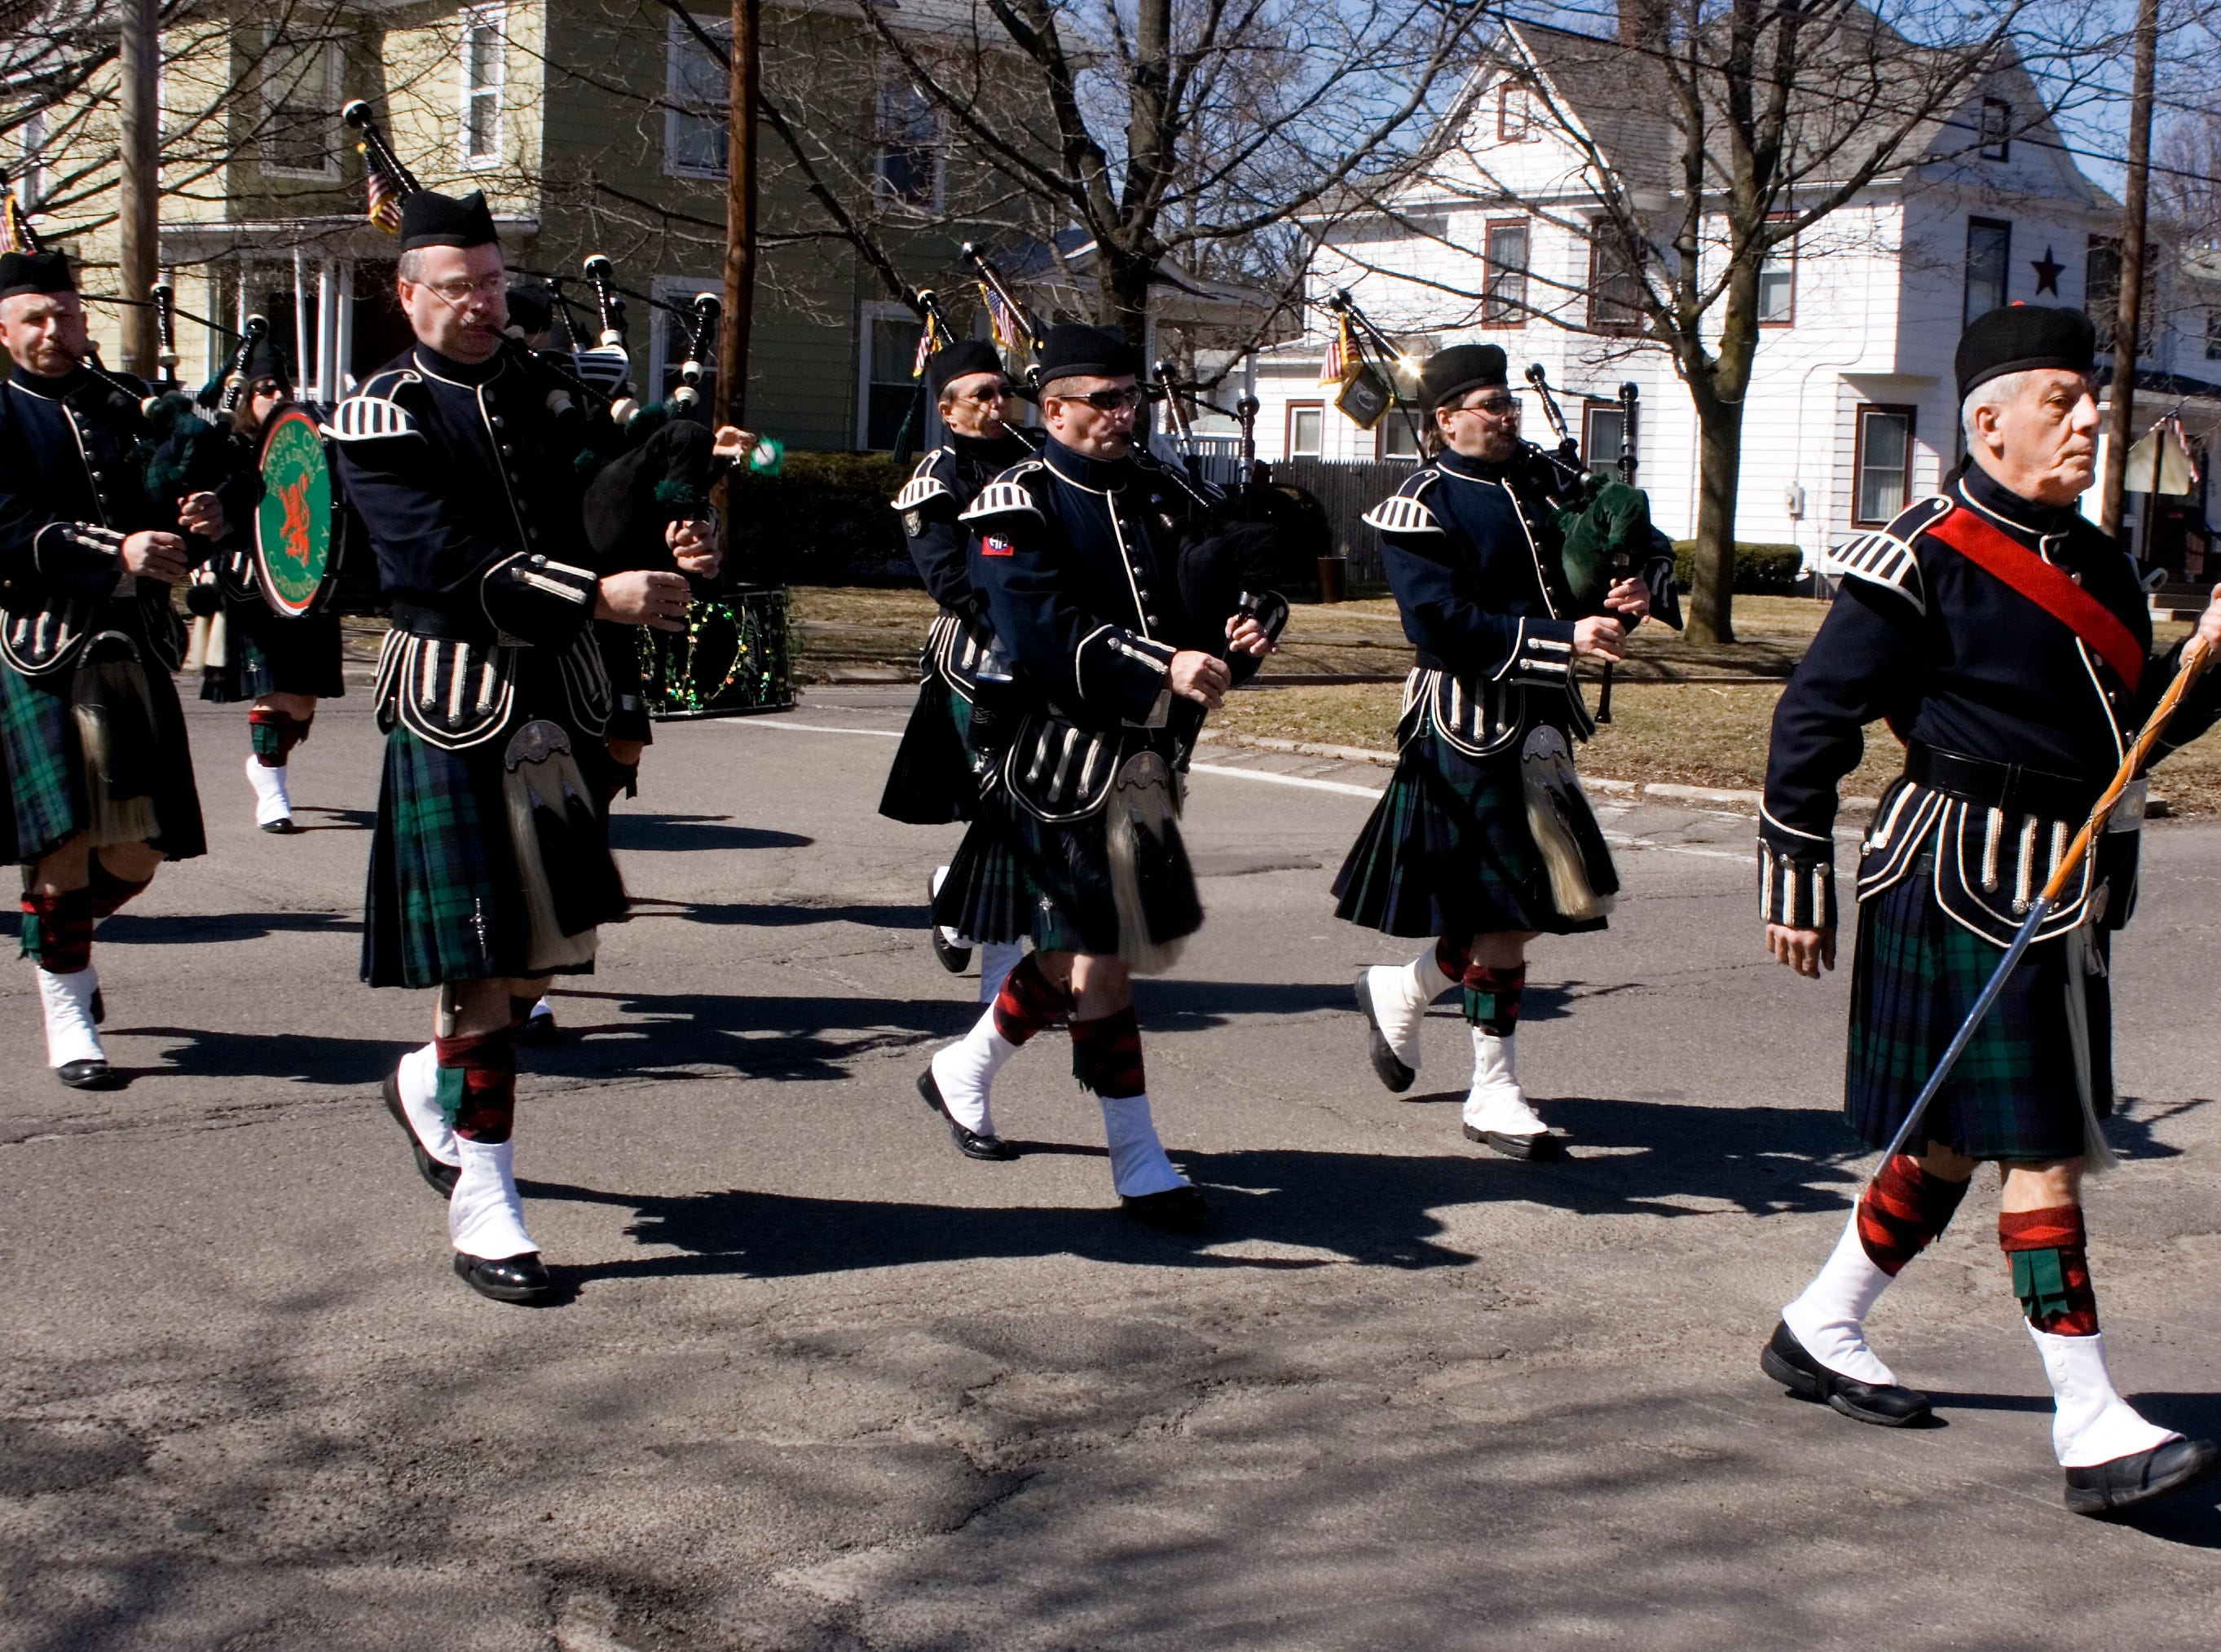 2009: Members of the Crystal City Pipes and Drums Band take part in Sunday's St. Patrick's Day parade in Horseheads. More than 30 units participated in this year's event.